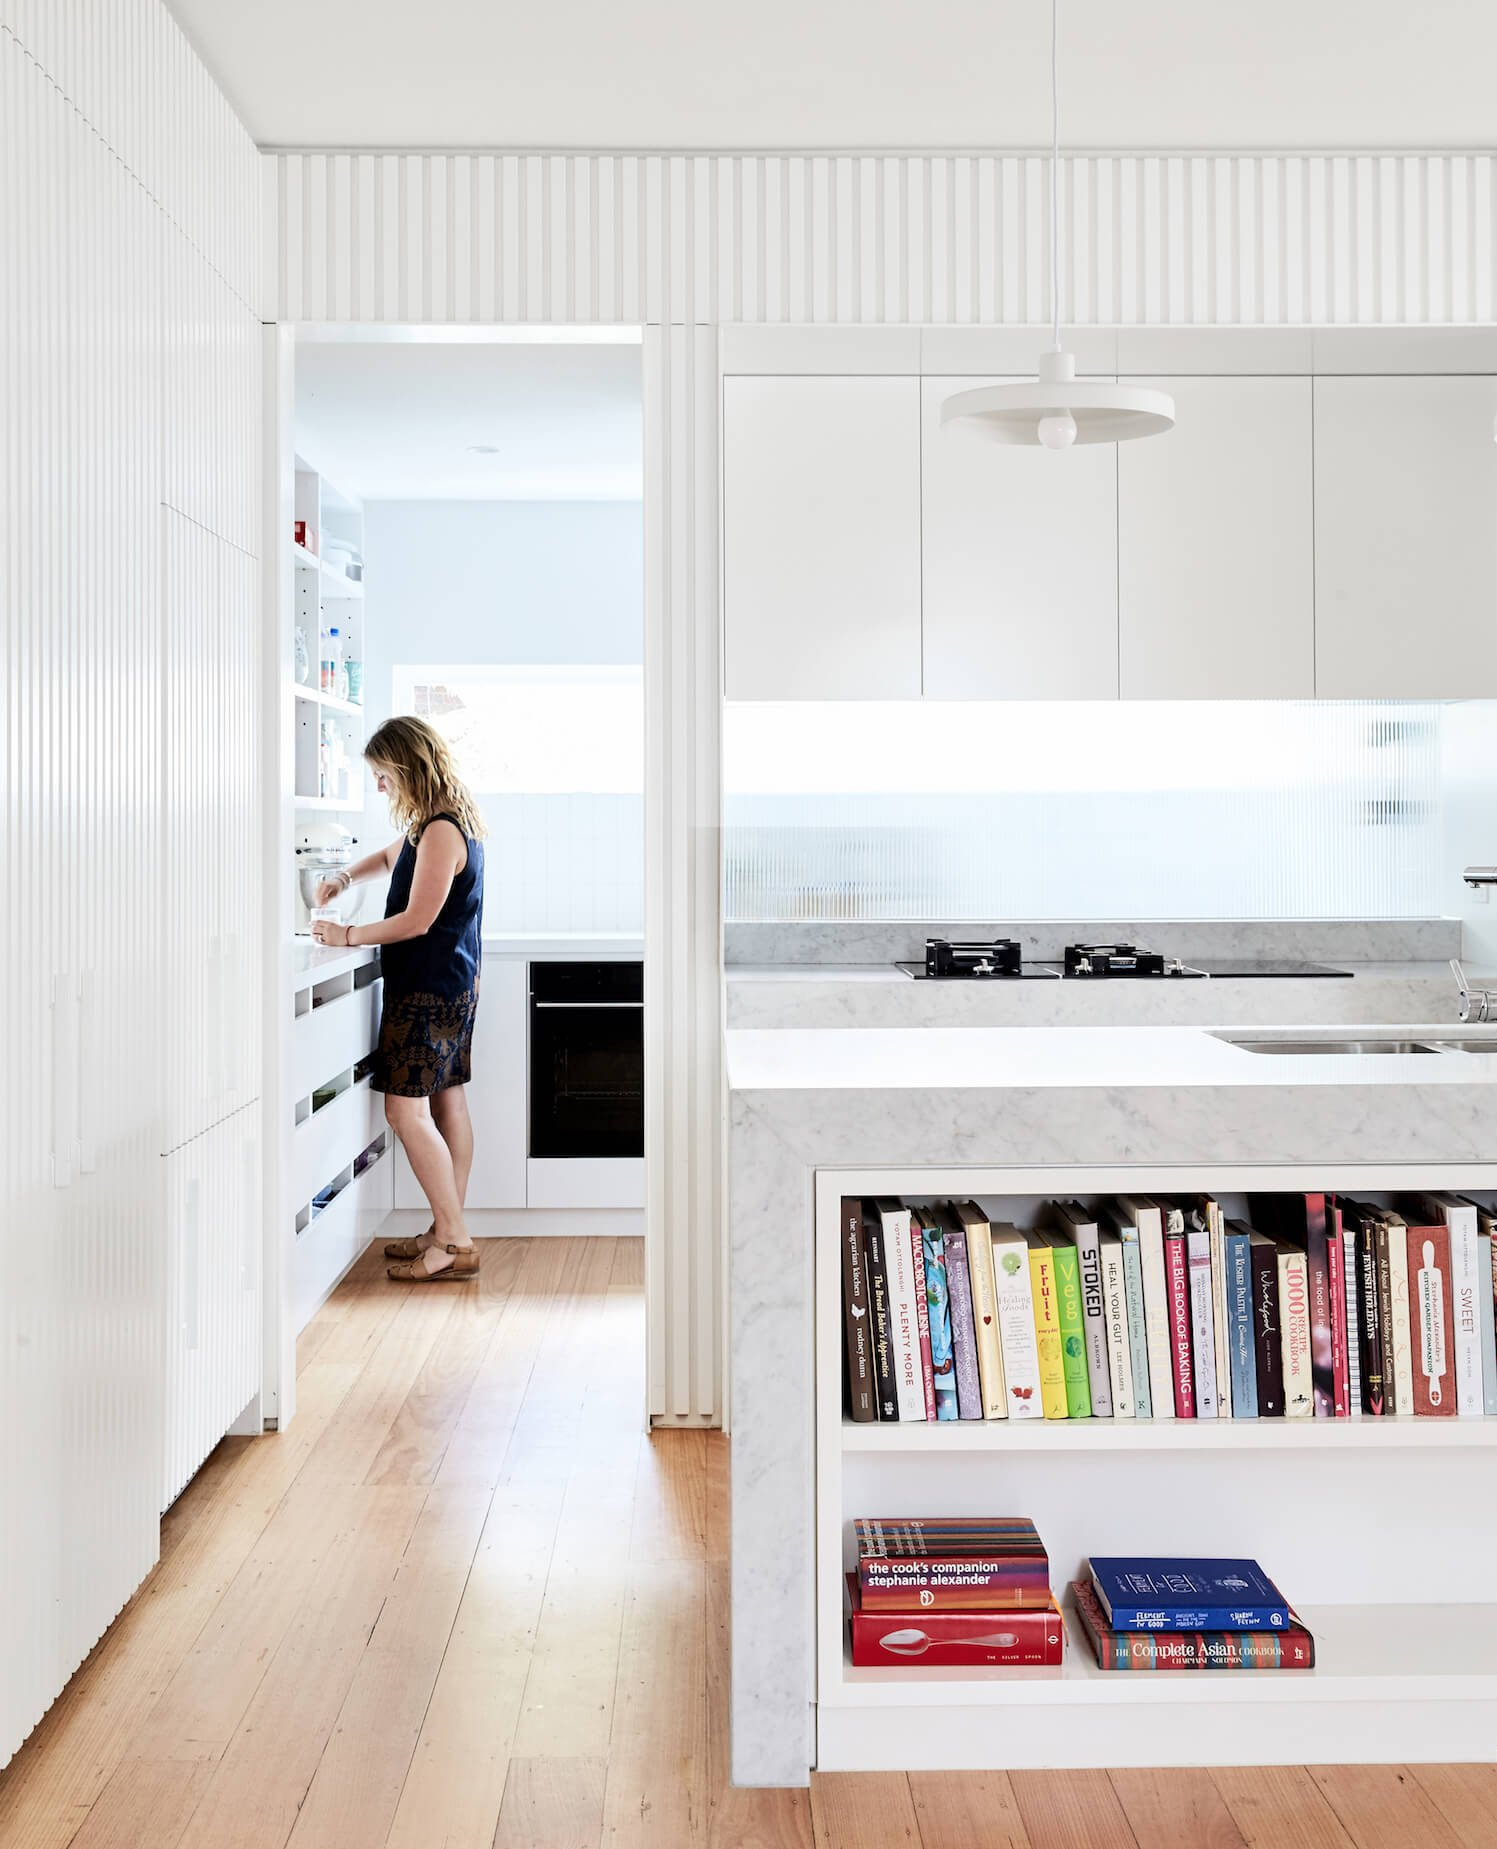 This second kitchen / walk in pantry by  Foomann Architects  has fantastic light. It's a place anyone would enjoy being in. Even if you're doing hum drum domestic tasks.